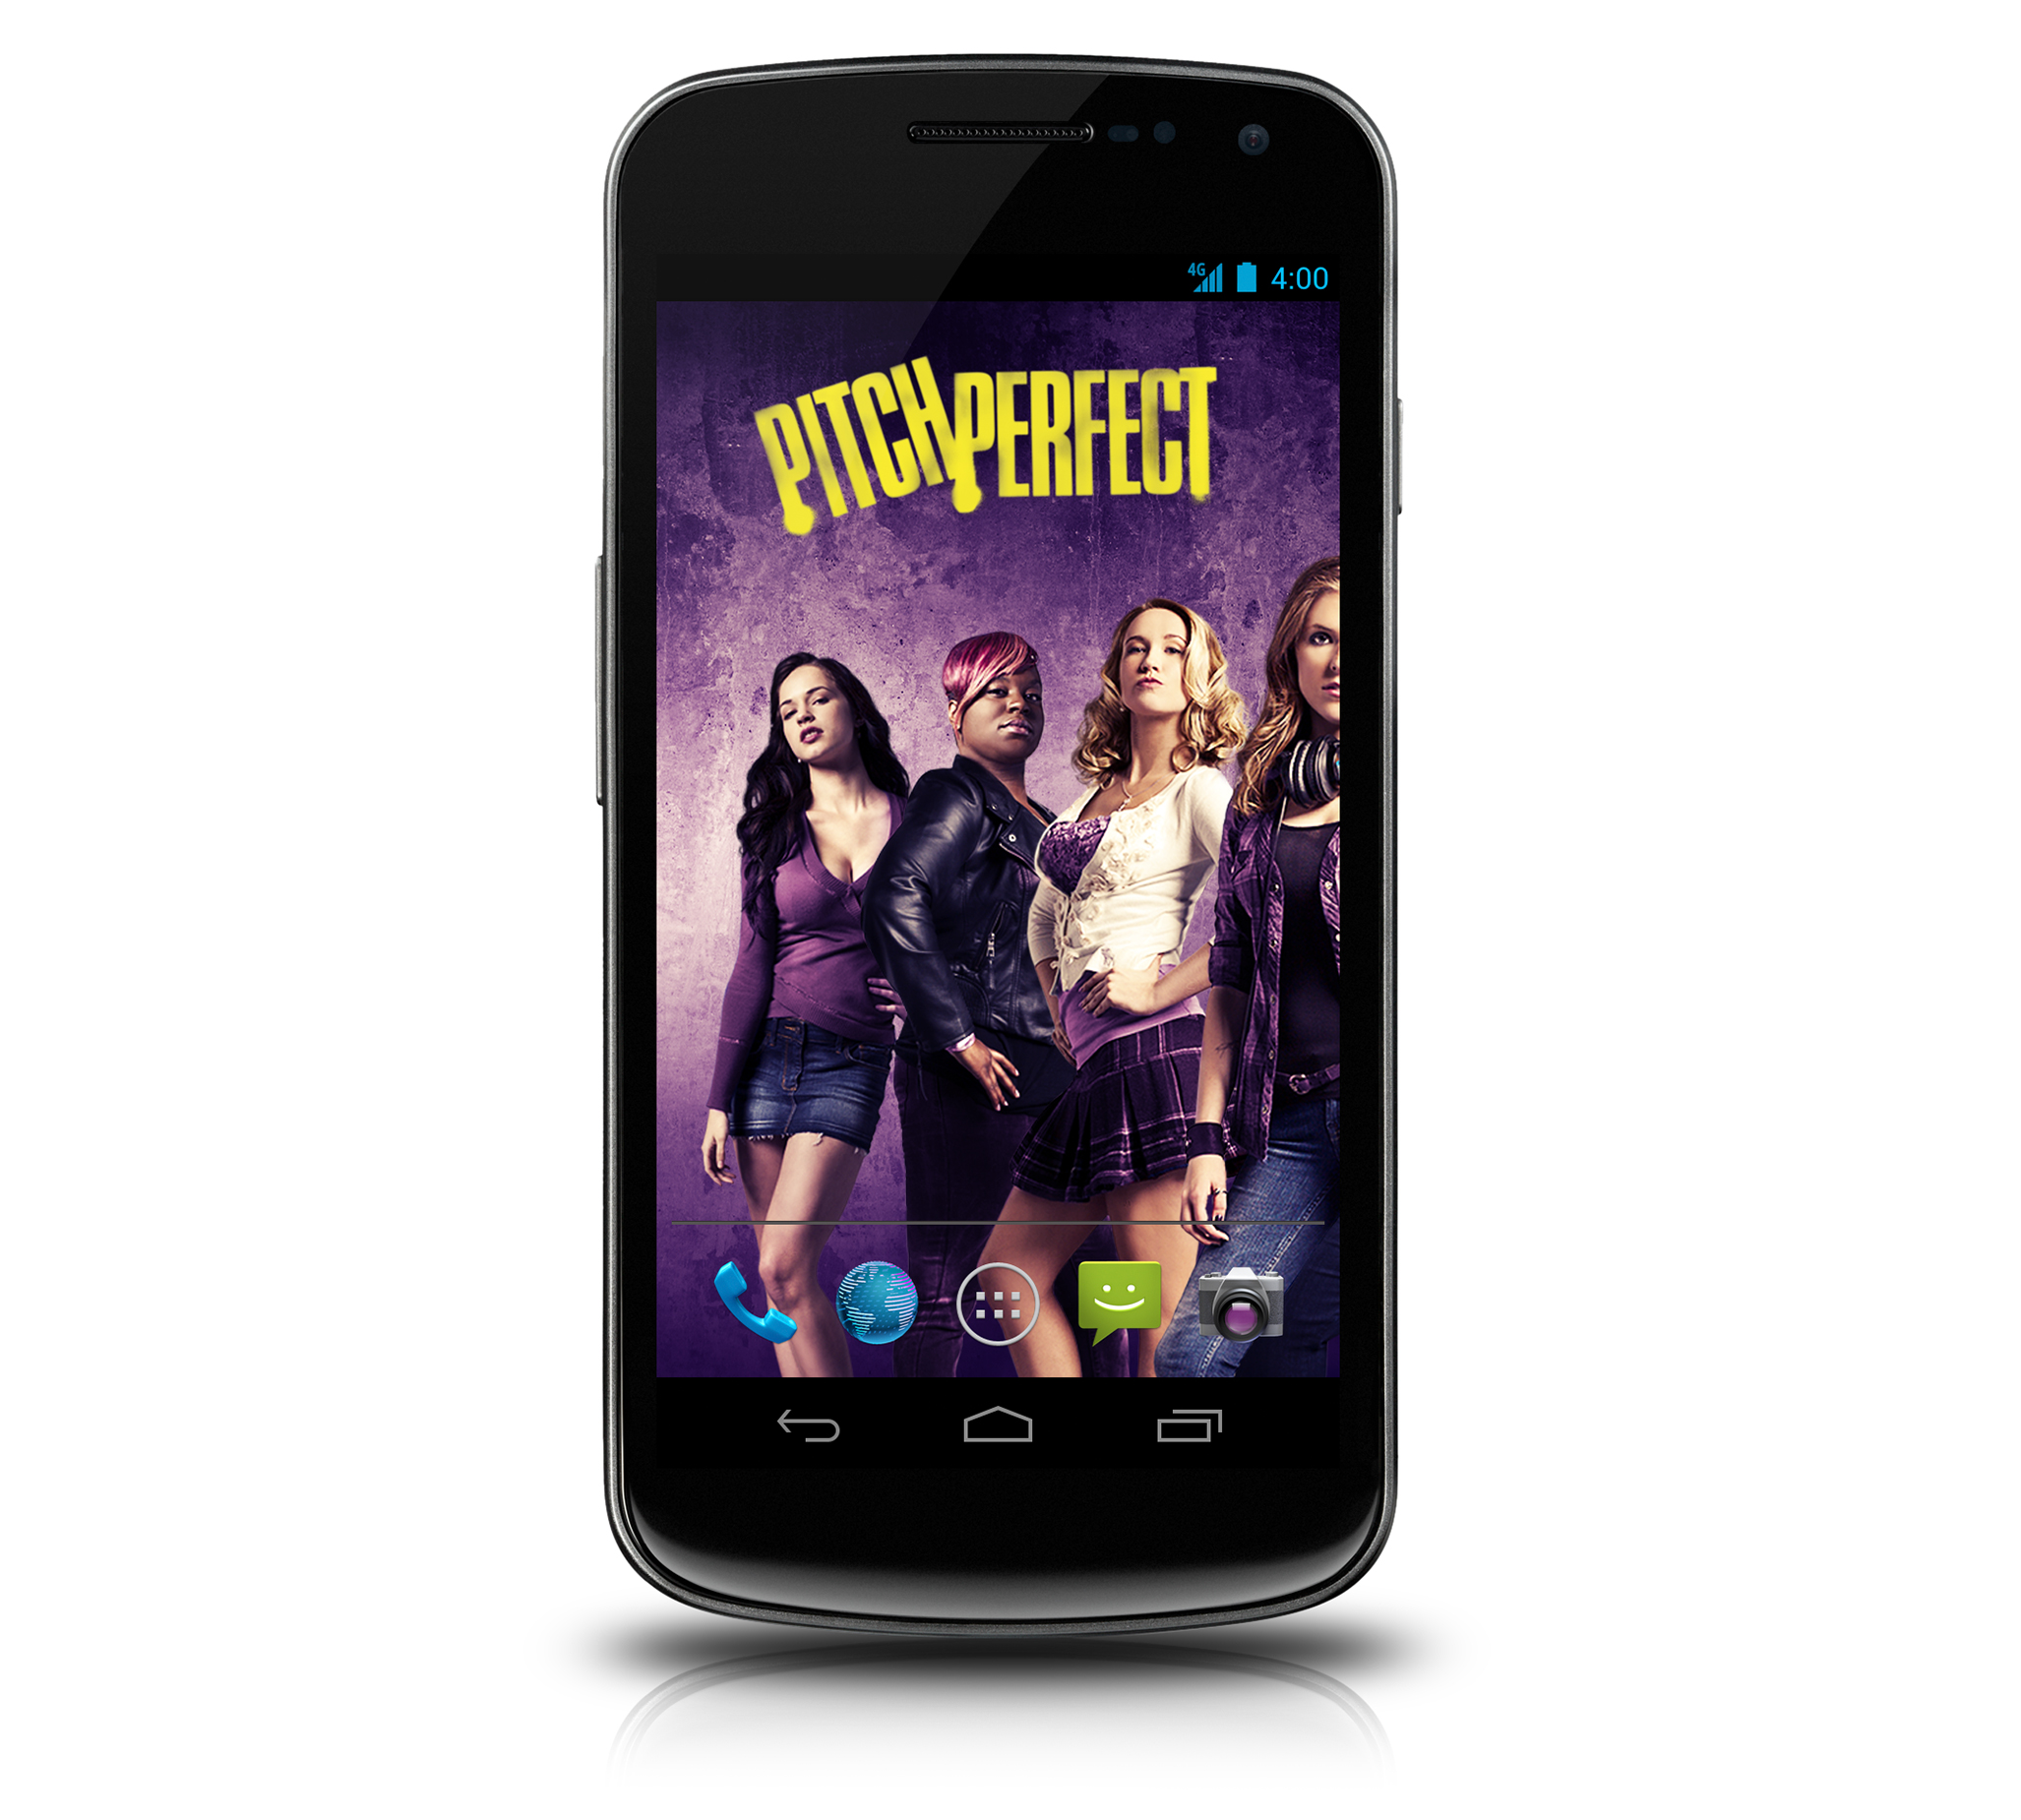 Pitch-Perfect-screens1.jpg